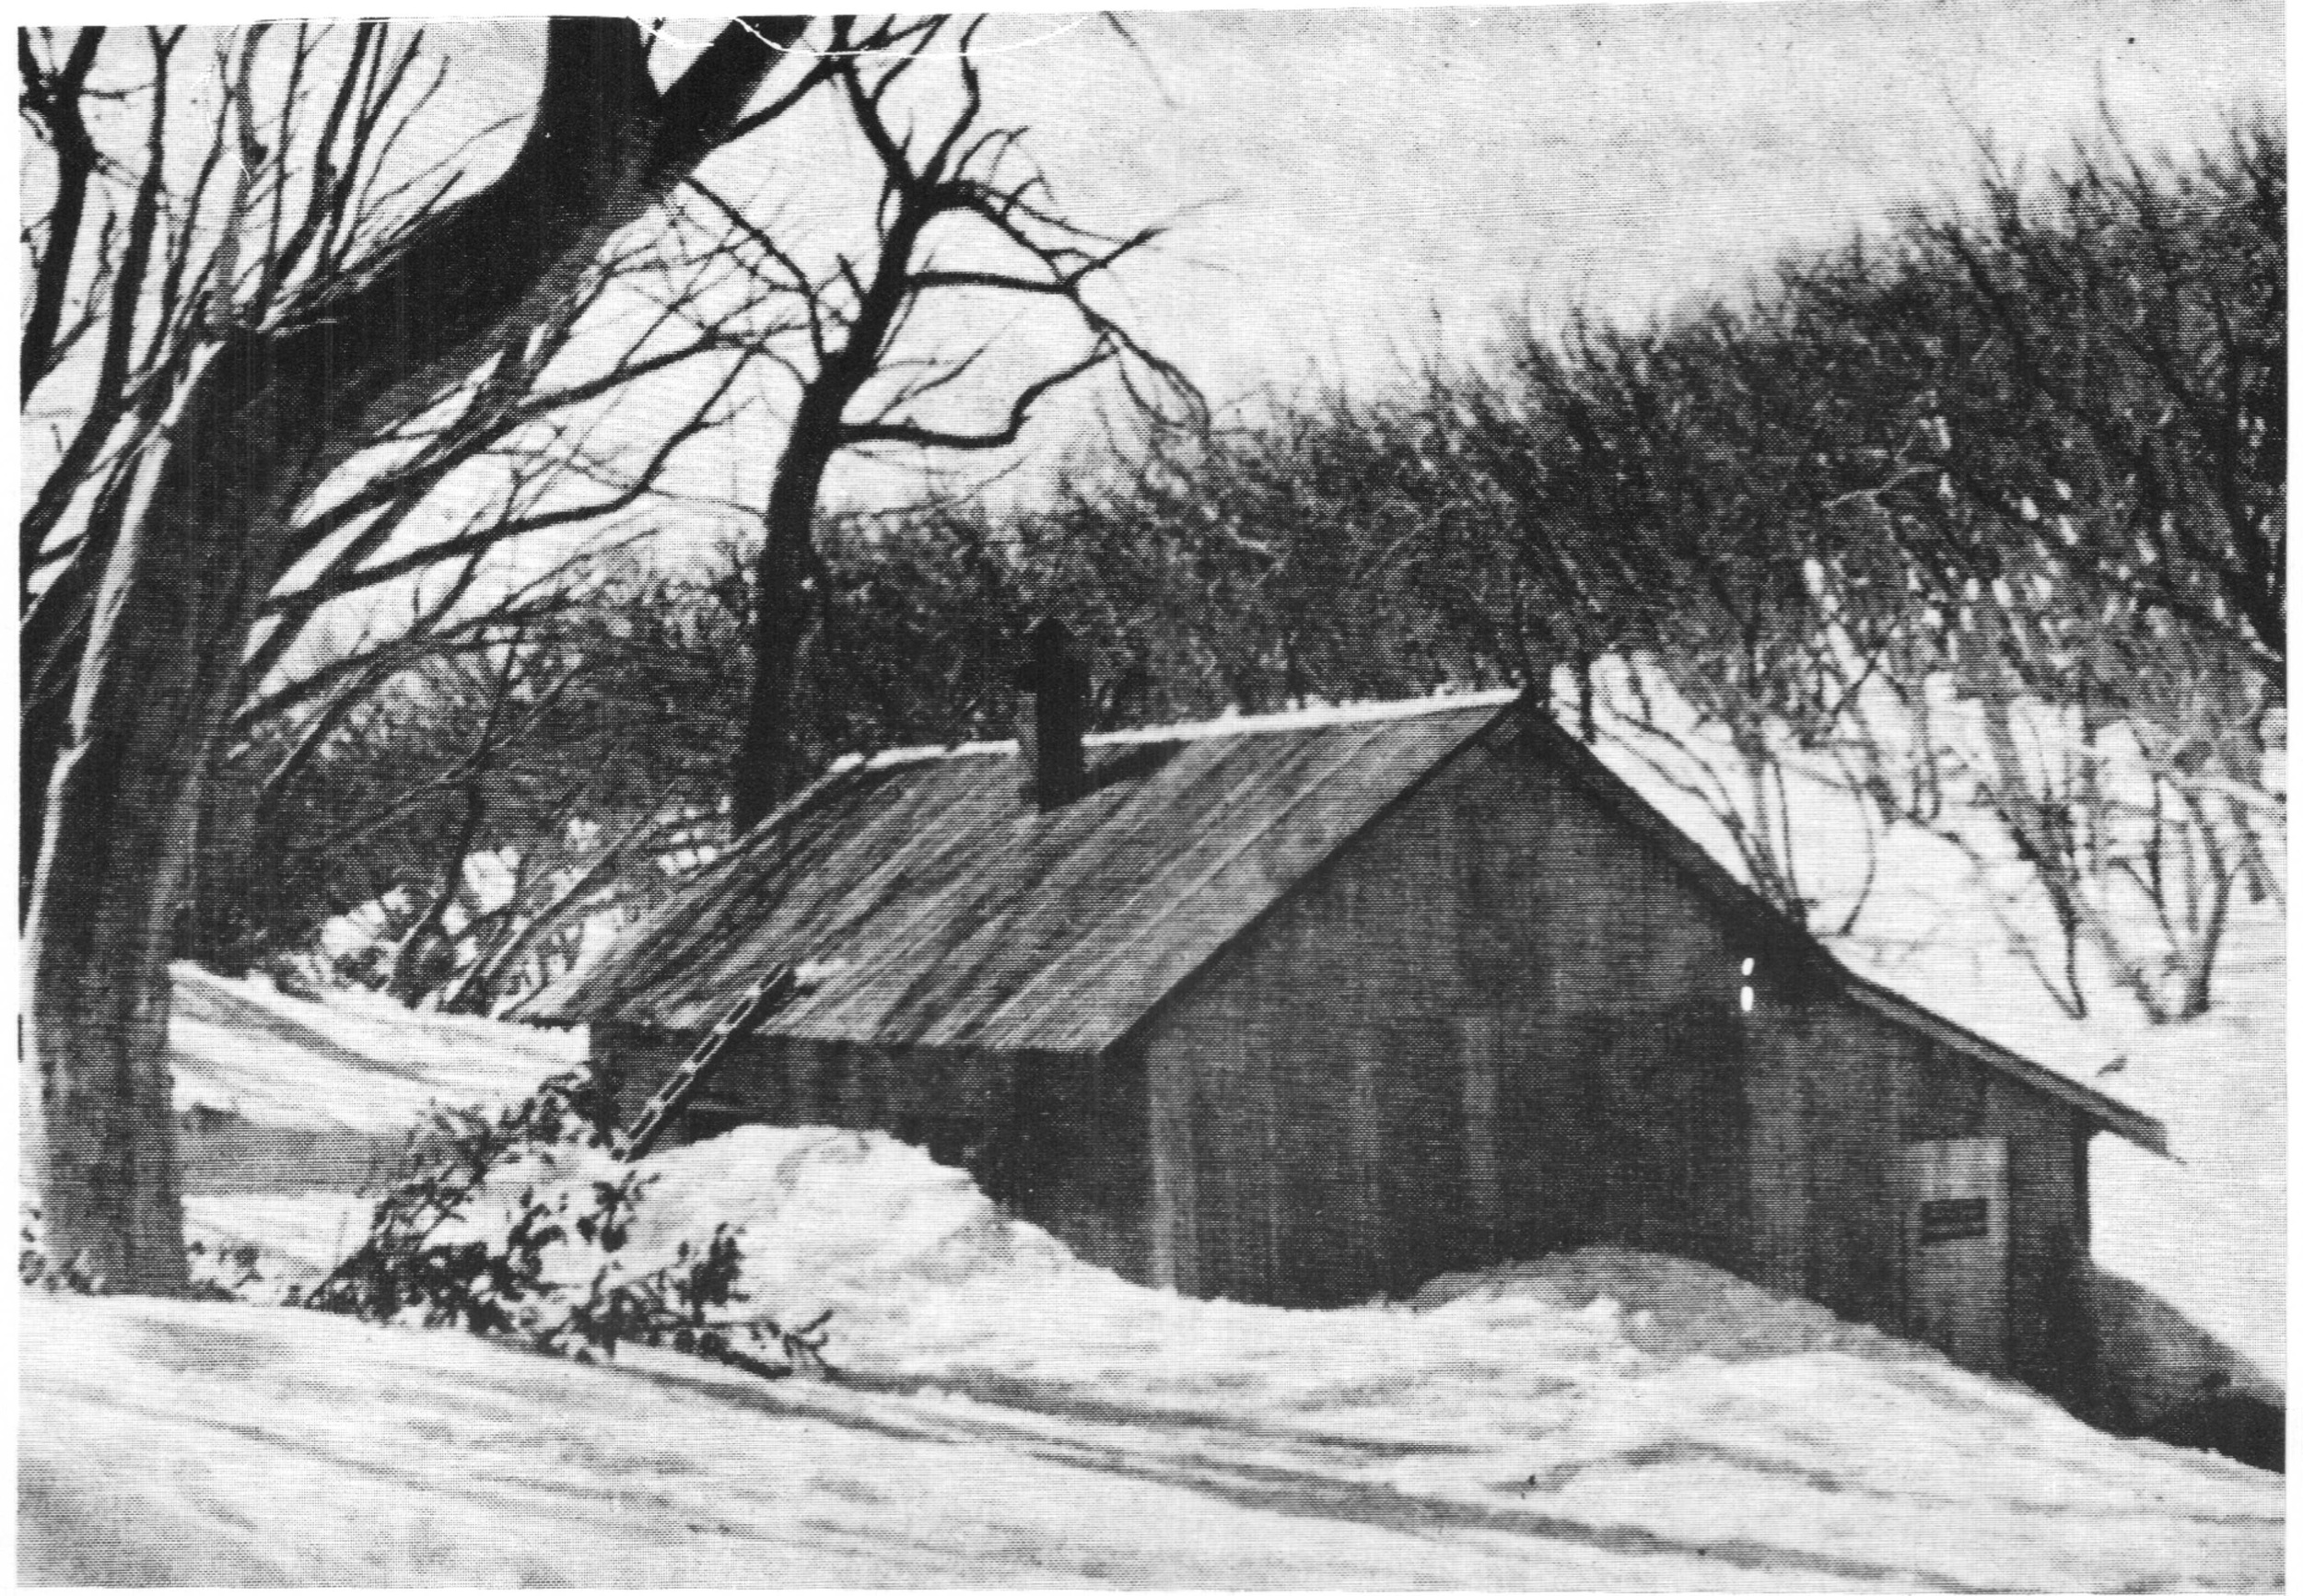 The 1945 hut built at what became Baw Baw village. Photo M Thomson.